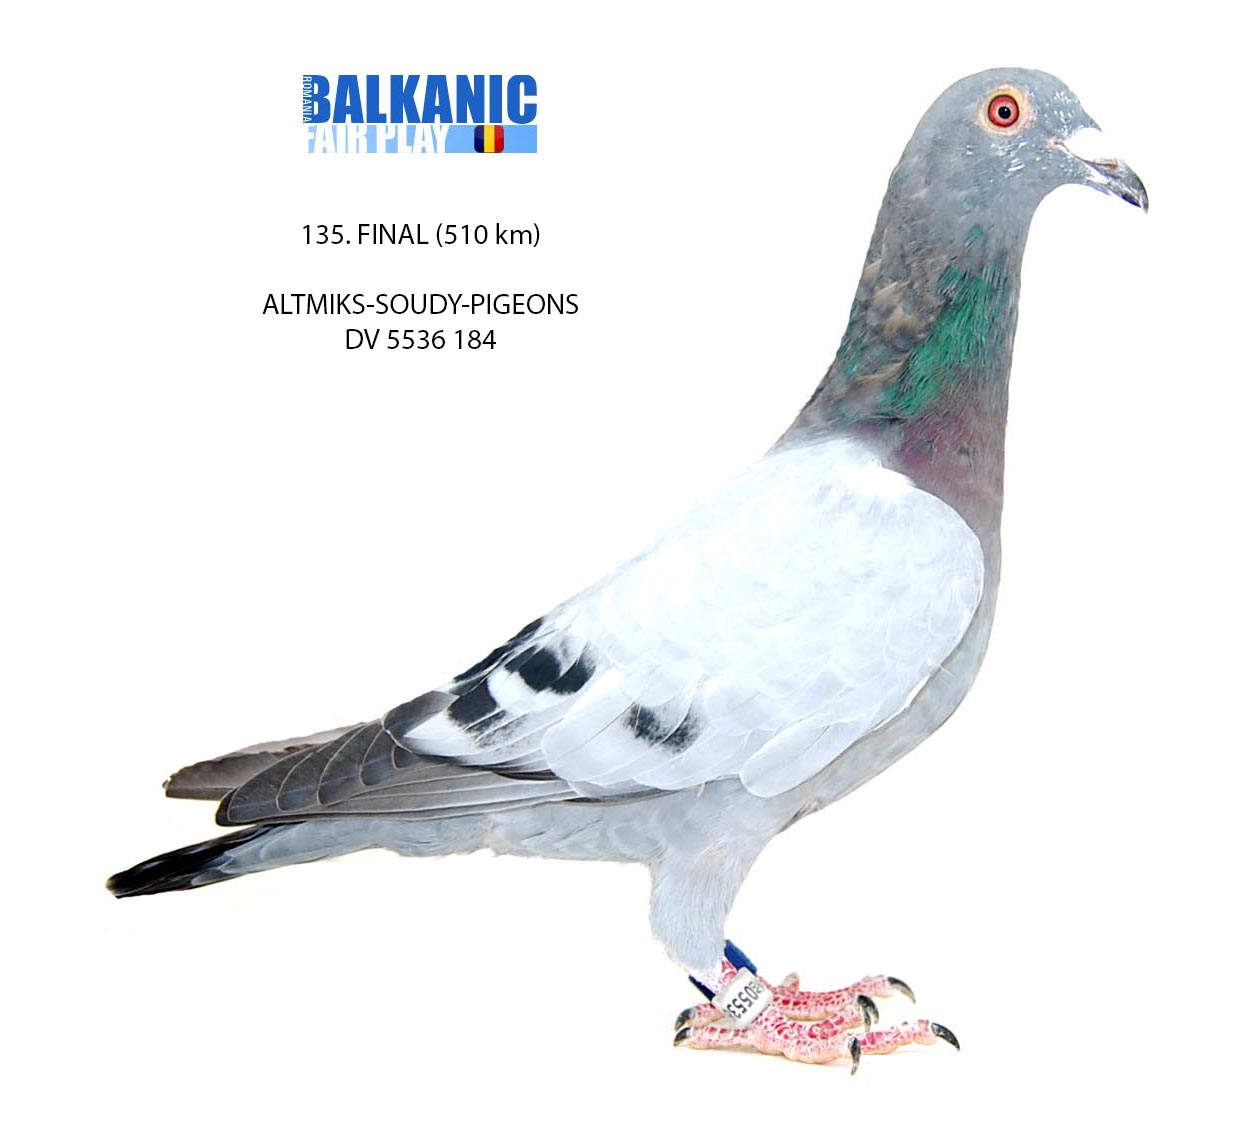 135 FINAL ALTMIKS-SOUDY-PIGEONSTEAM AGermanyDV 5536 184